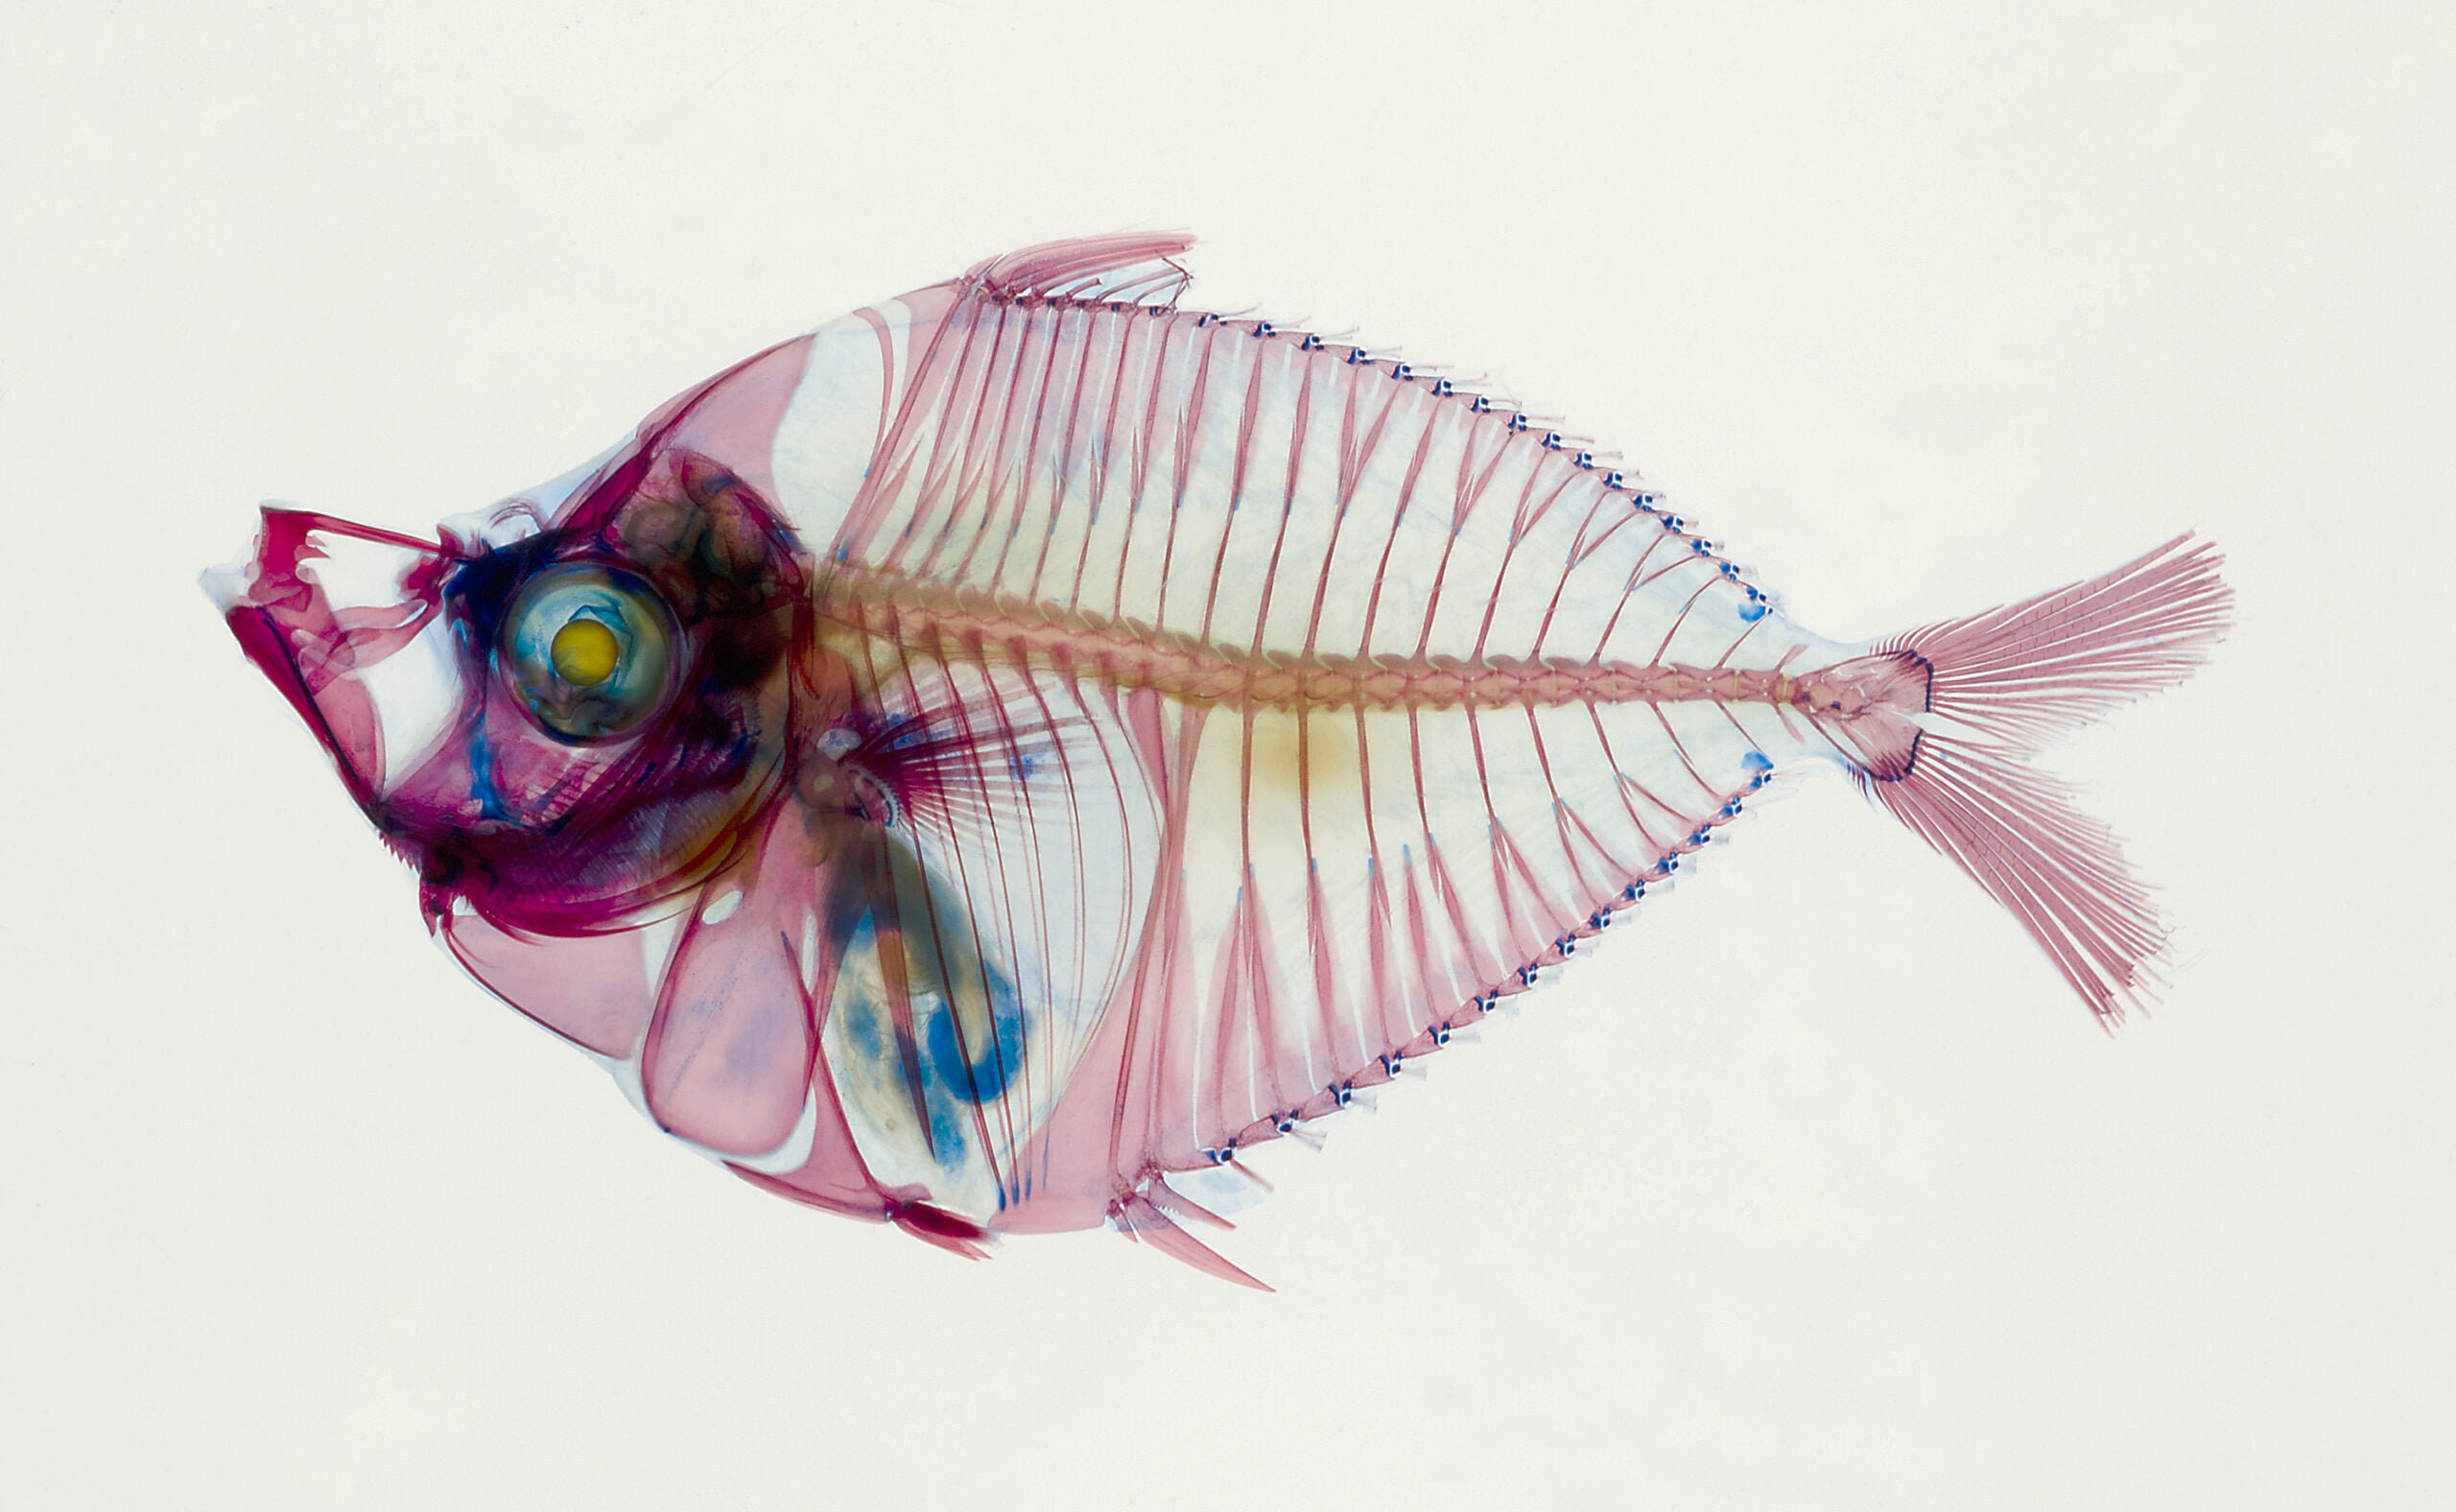 A bioluminescent ponyfish with a light-generating organ in its esophagus.